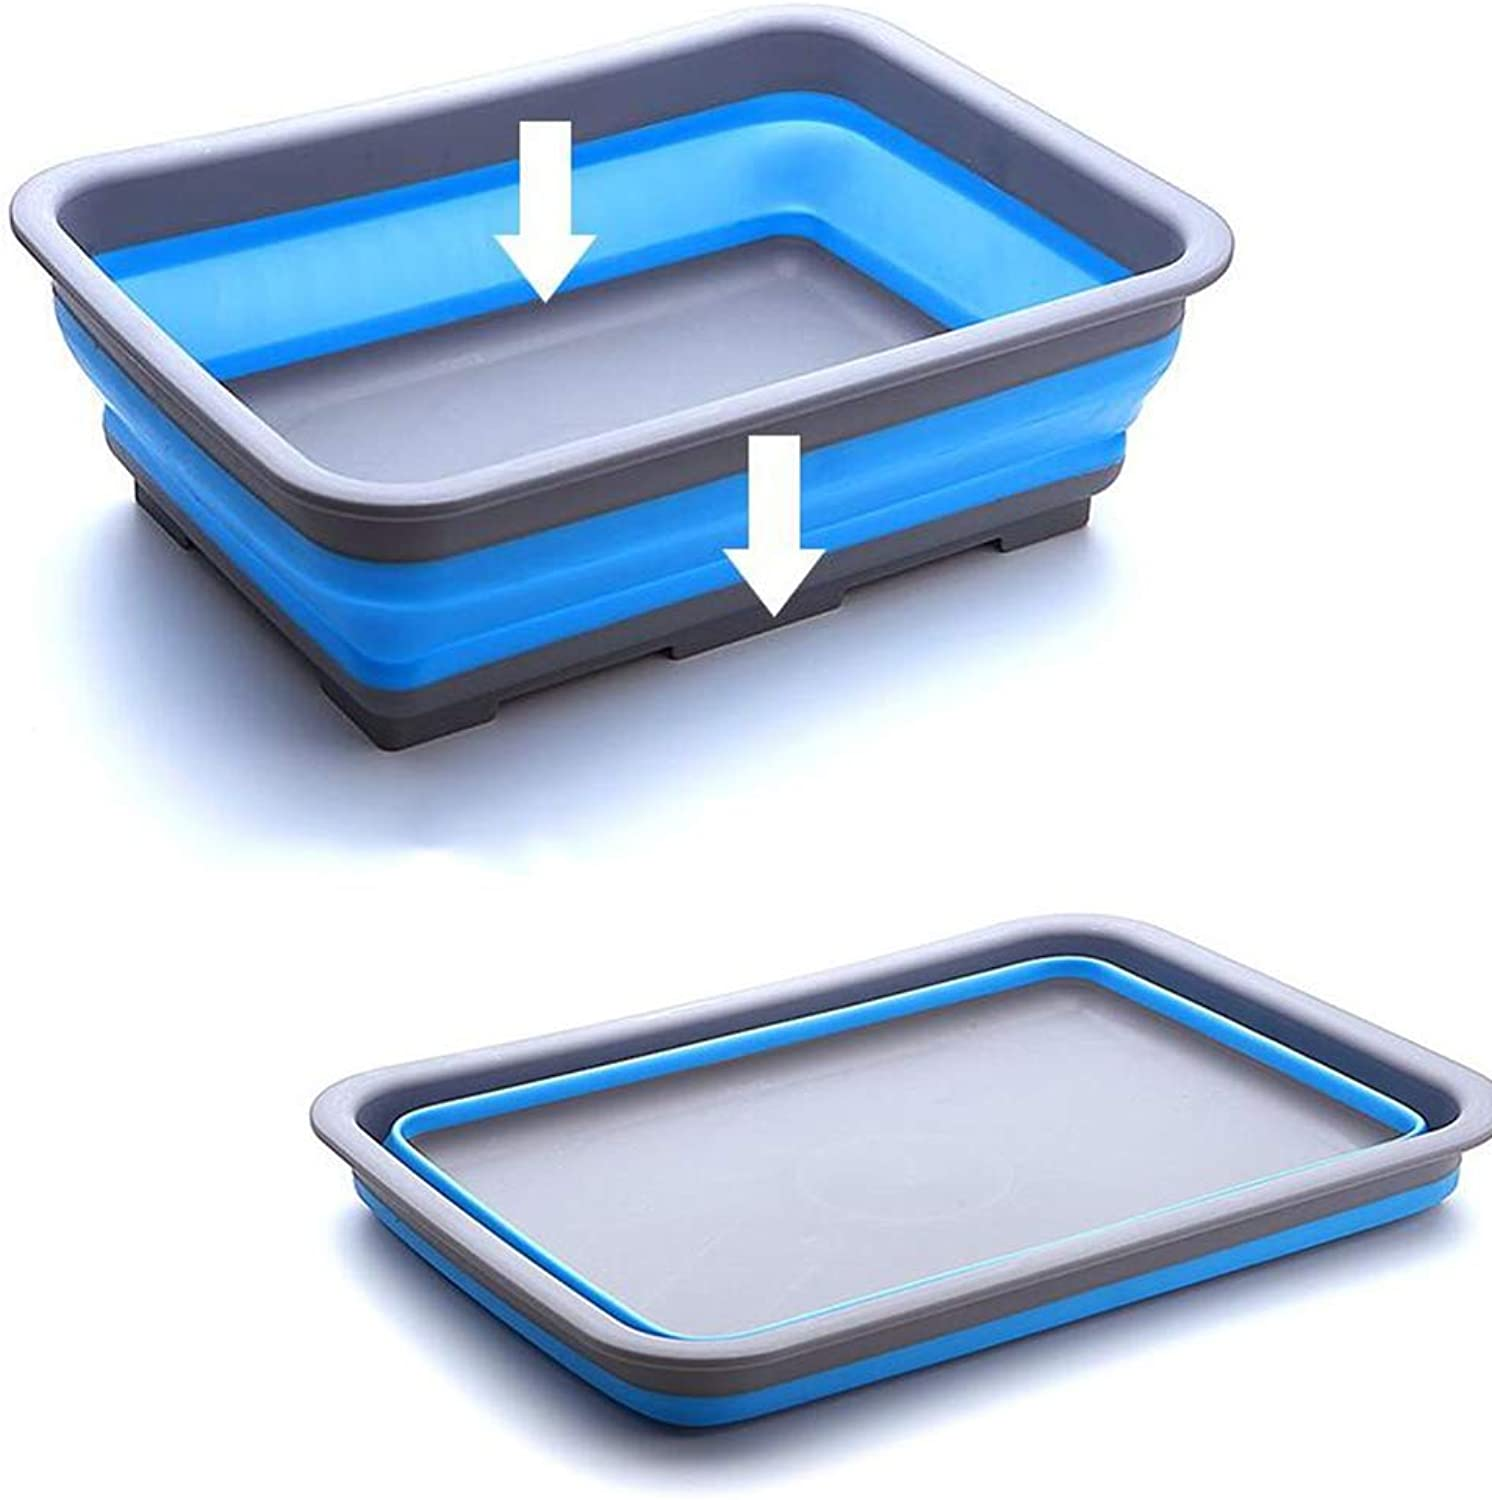 Collapsible Washing Up Bowl  Ideal for Camping Foldable Square washbasin Outdoor Travel Portable washbasin Washtub Creative Home Home